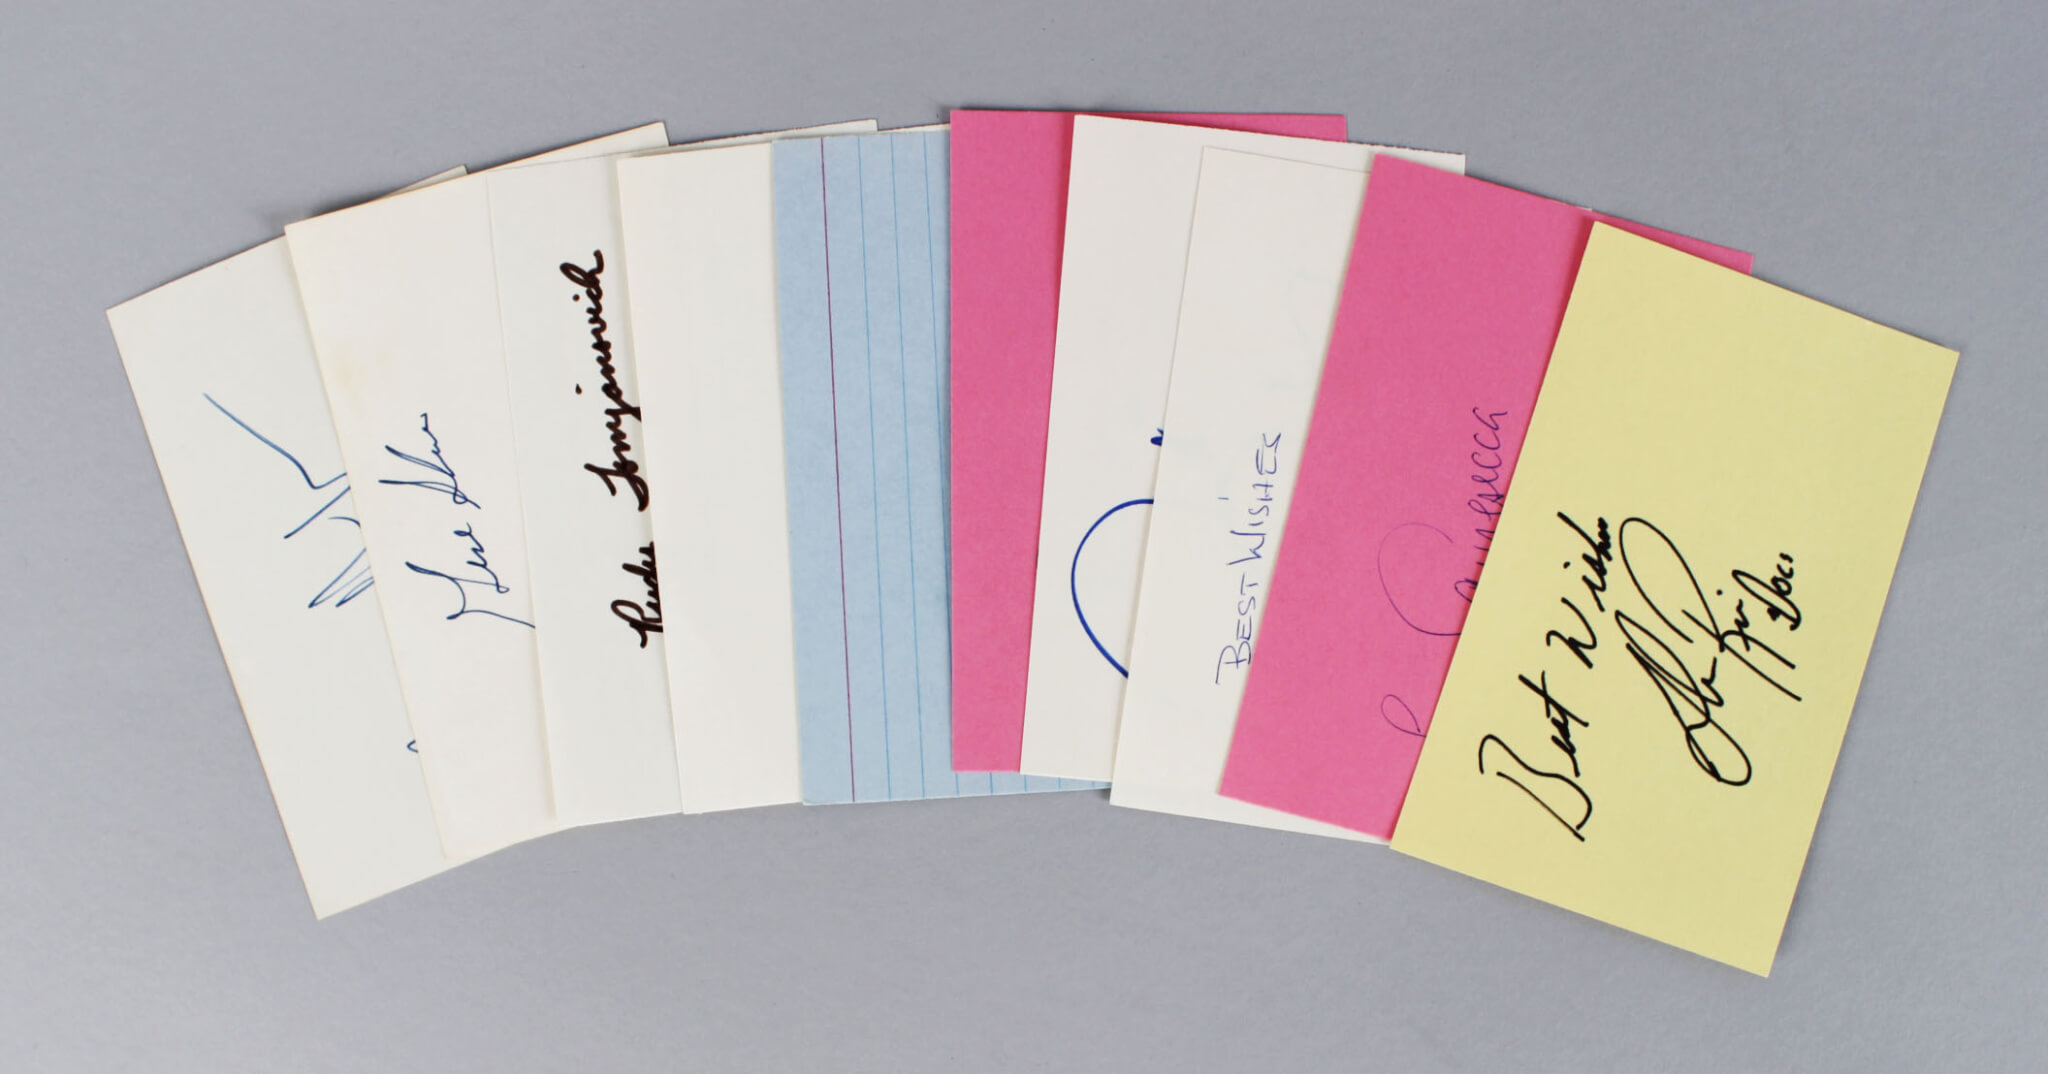 NBA Coach's Signed 3x5 Index Card Lot (10) - Pat Riley, Larry Brown, Don Chaney etc. (JSA)